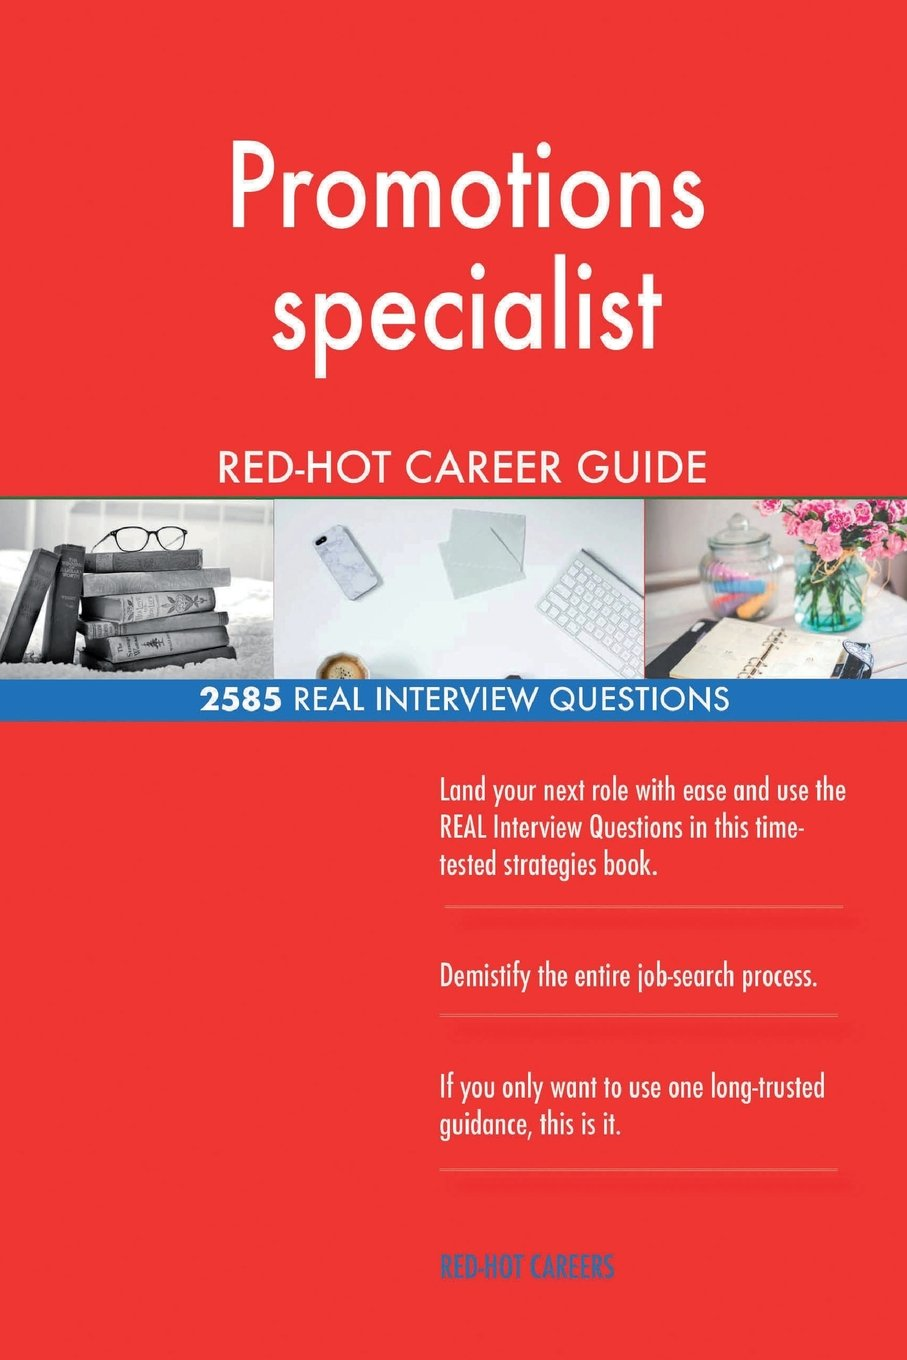 Promotions specialist RED-HOT Career Guide; 2585 REAL Interview Questions ebook